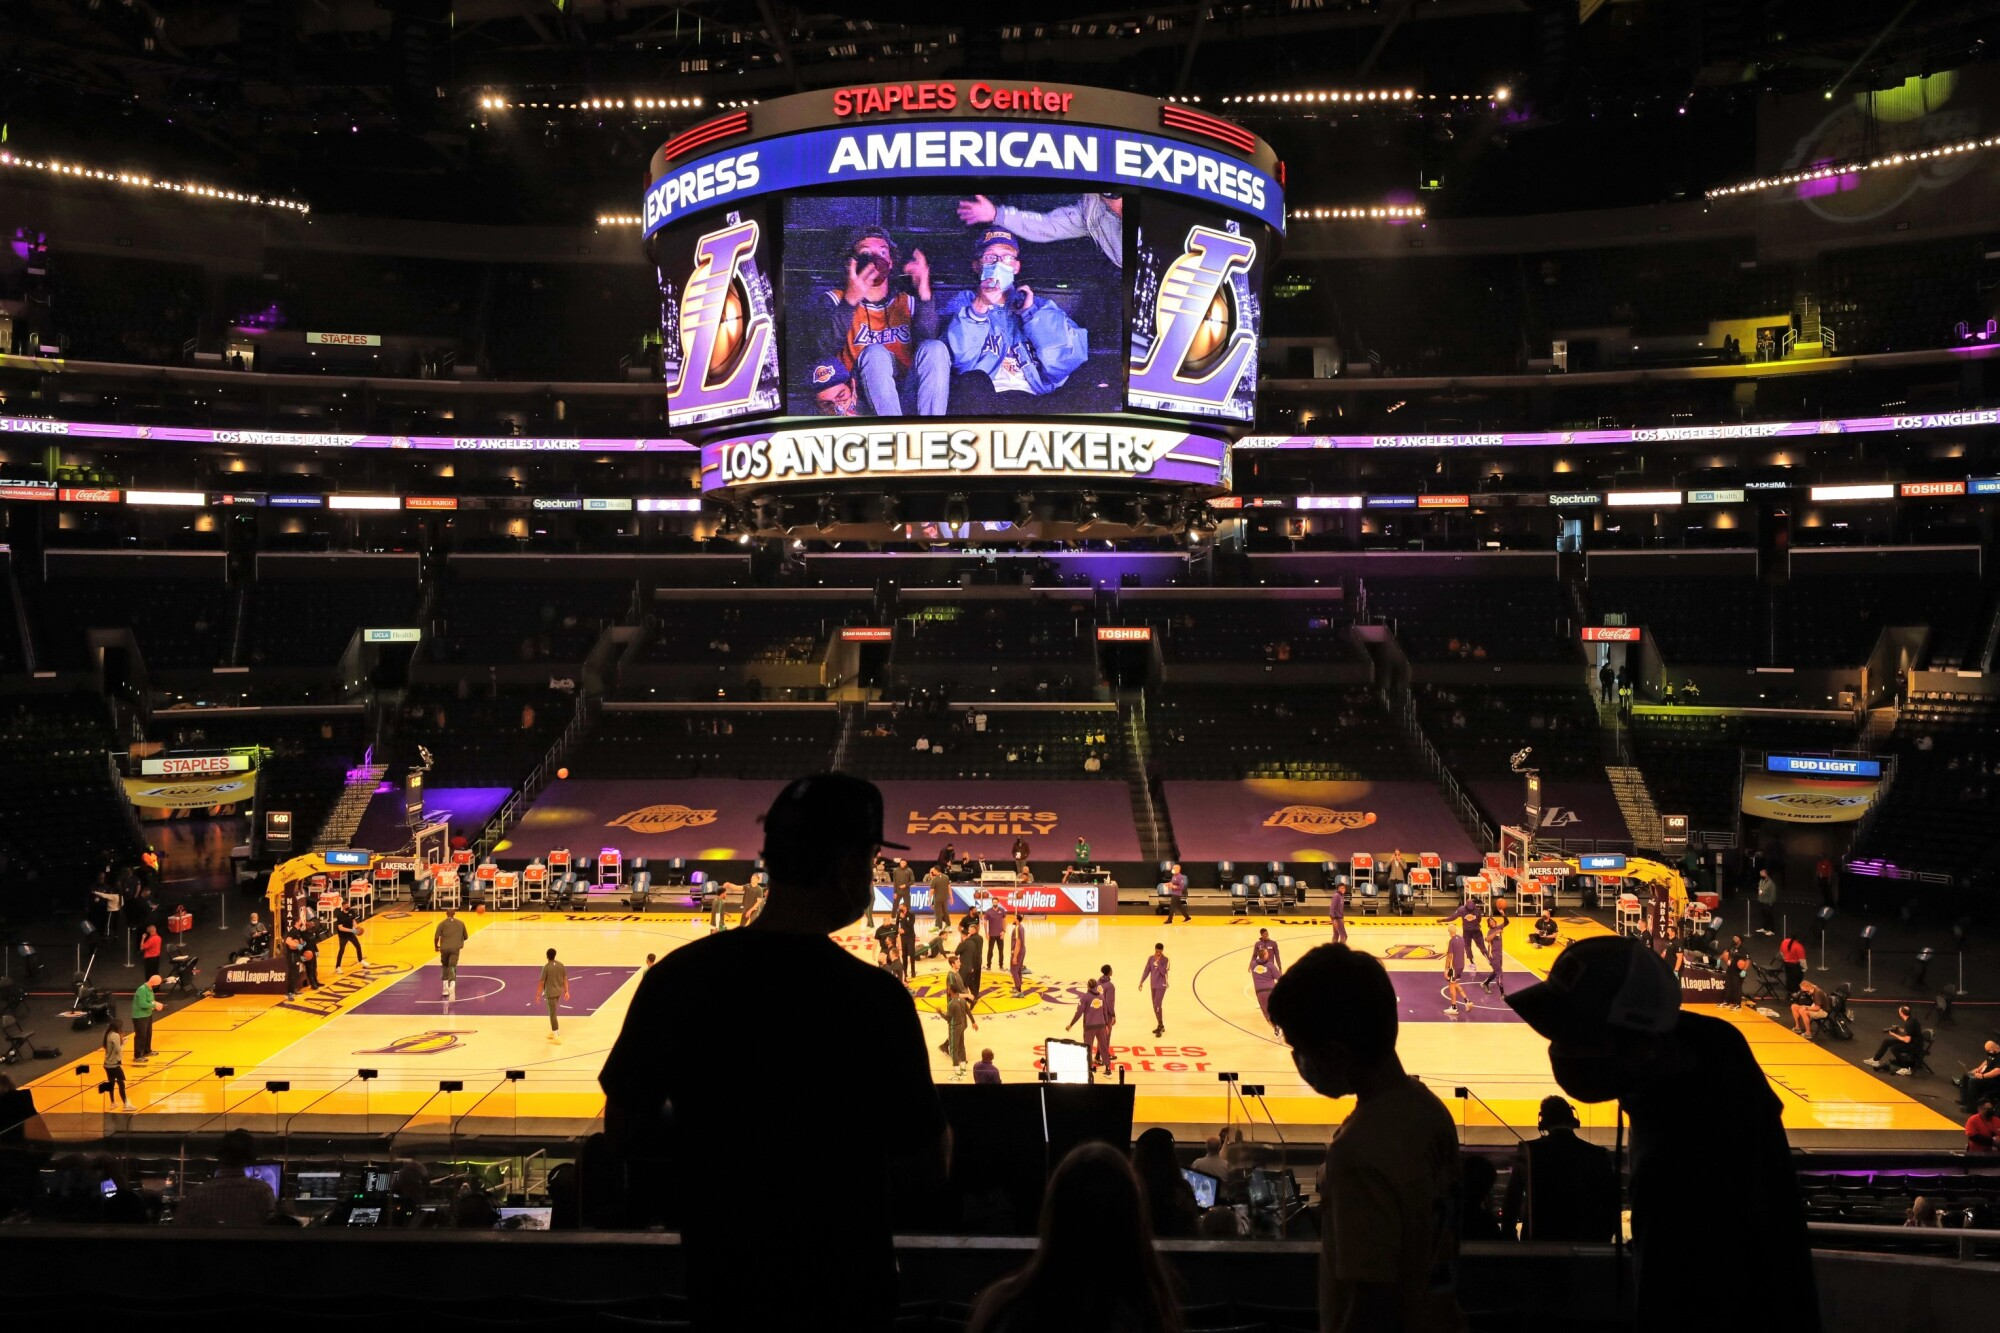 Fans take their seats before the Lakers play the Boston Celtics at Staples Center on April 15, 2021.